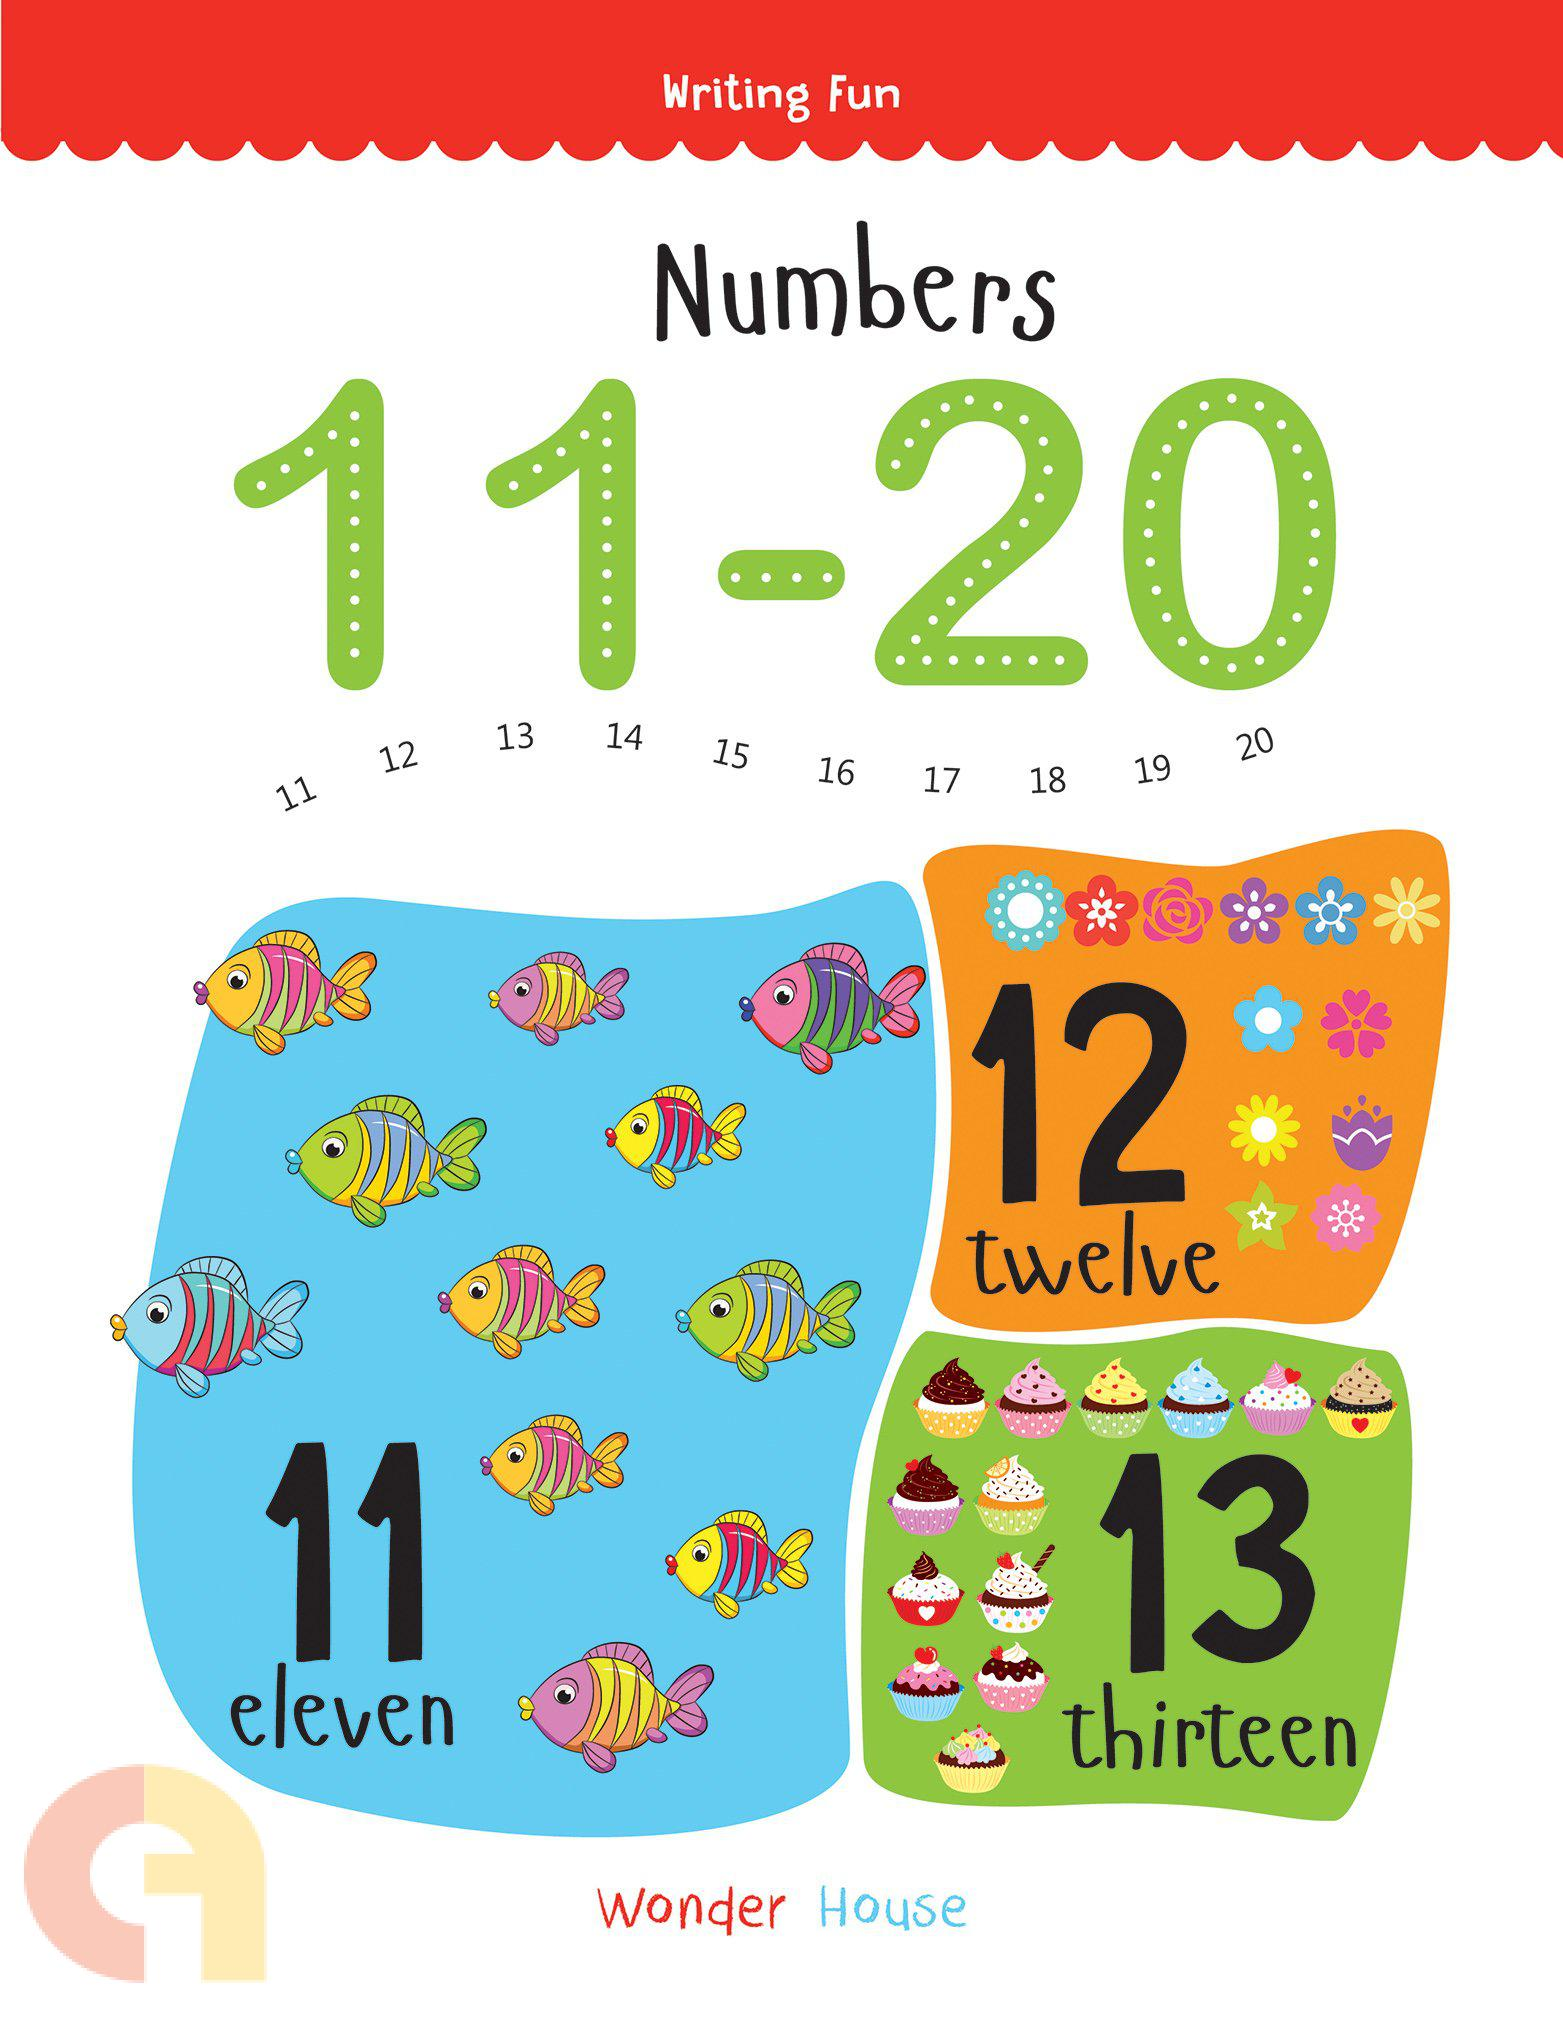 Numbers 11 - 20